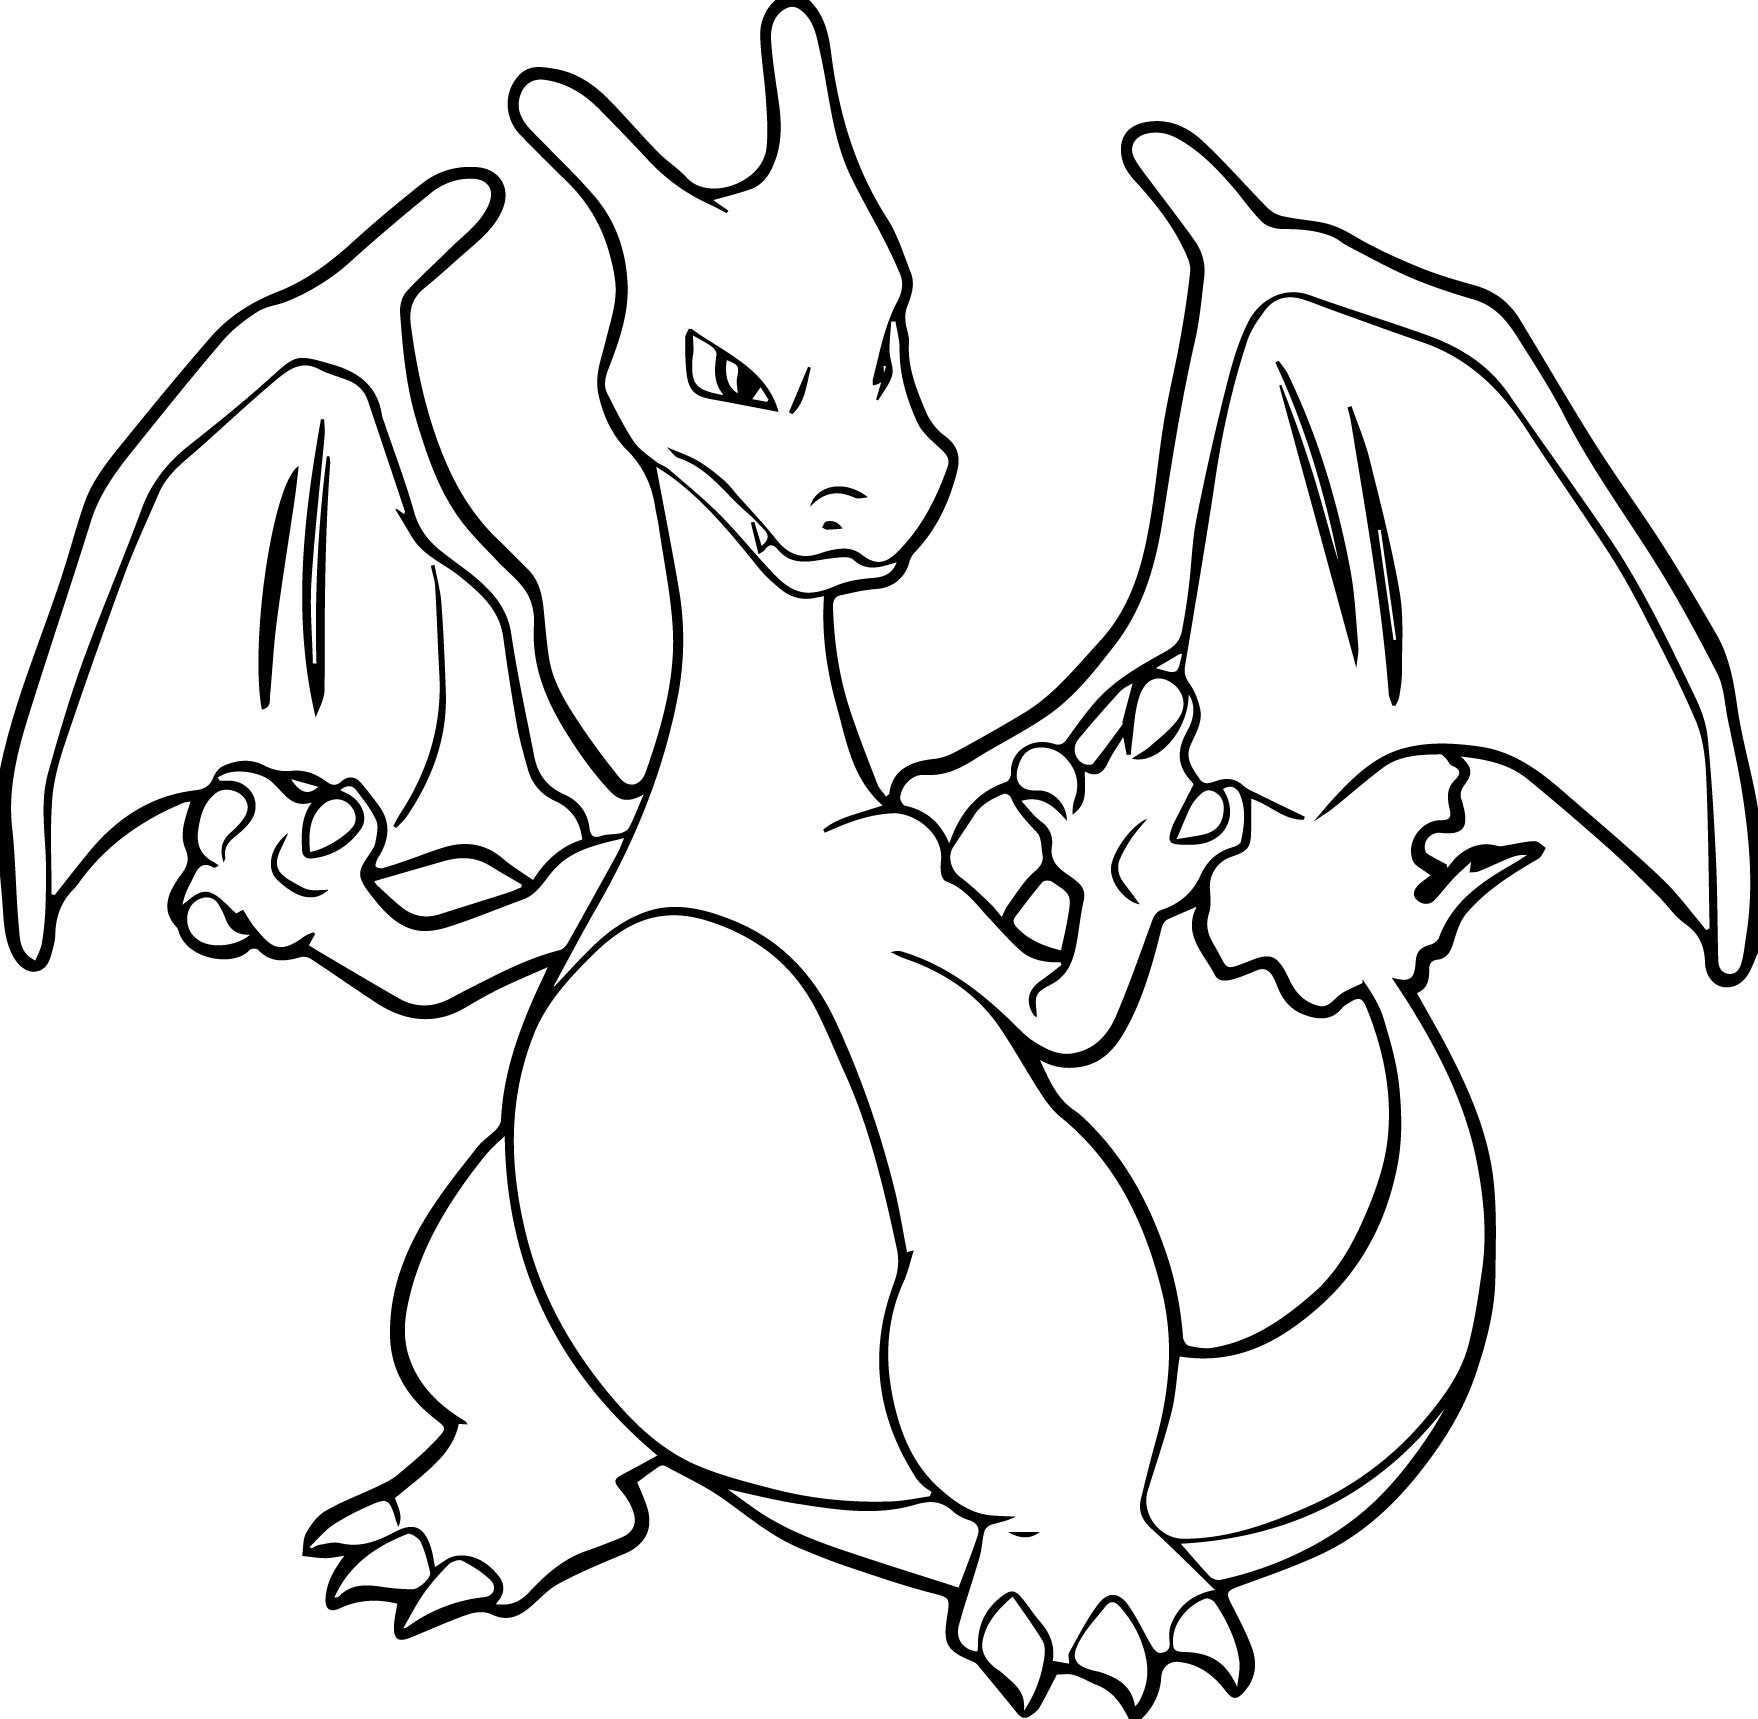 25 Excellent Picture Of Charmander Coloring Page Entitlementtrap Com In 2020 Pokemon Coloring Pages Pokemon Coloring Pokemon Coloring Sheets